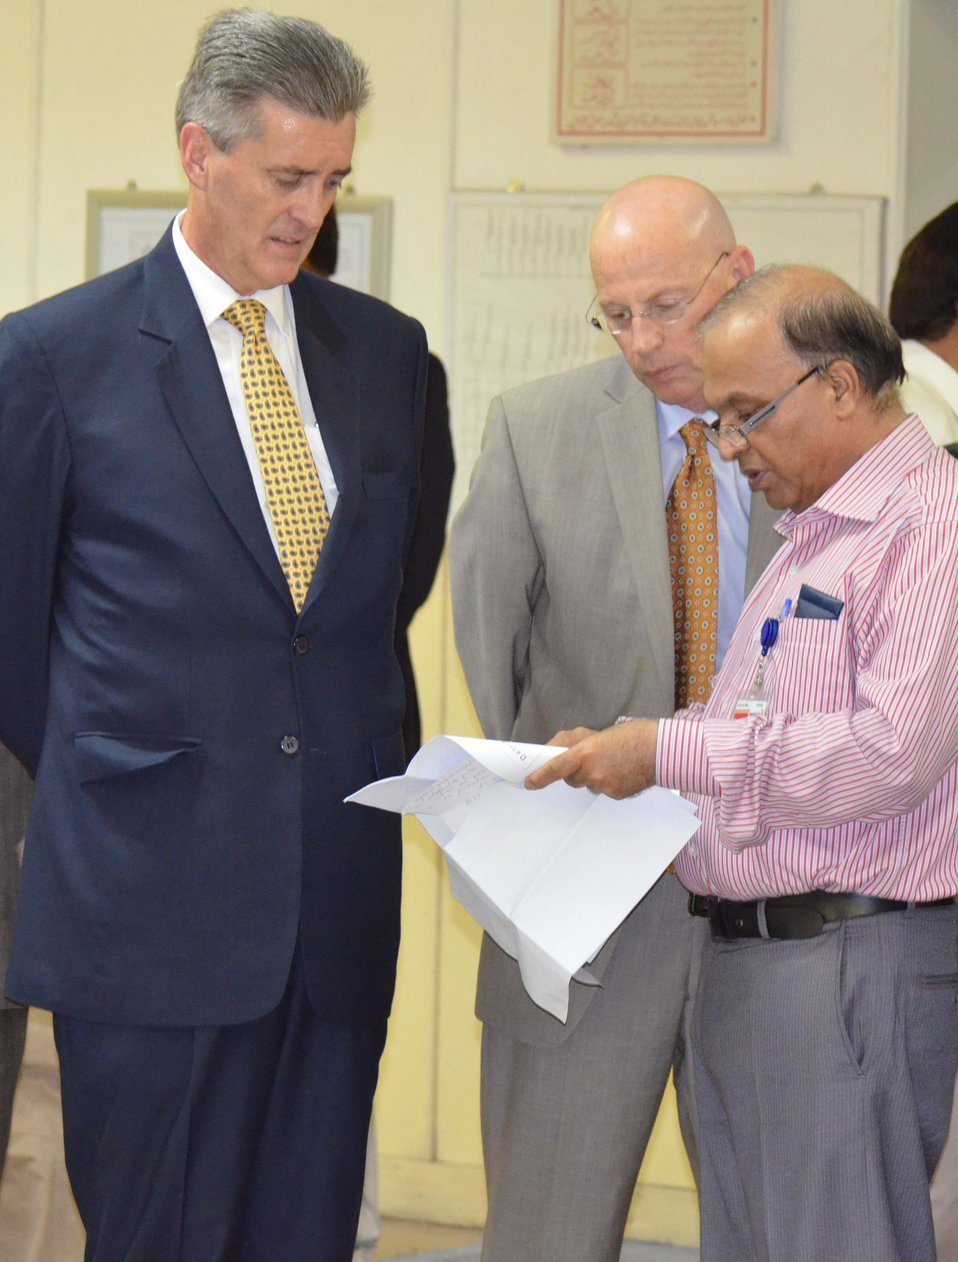 Ambassador Olson and USAID Mission Director Gregory Gottlieb being briefed by Sultan Zafar, CEO Genco Holding Company Limited